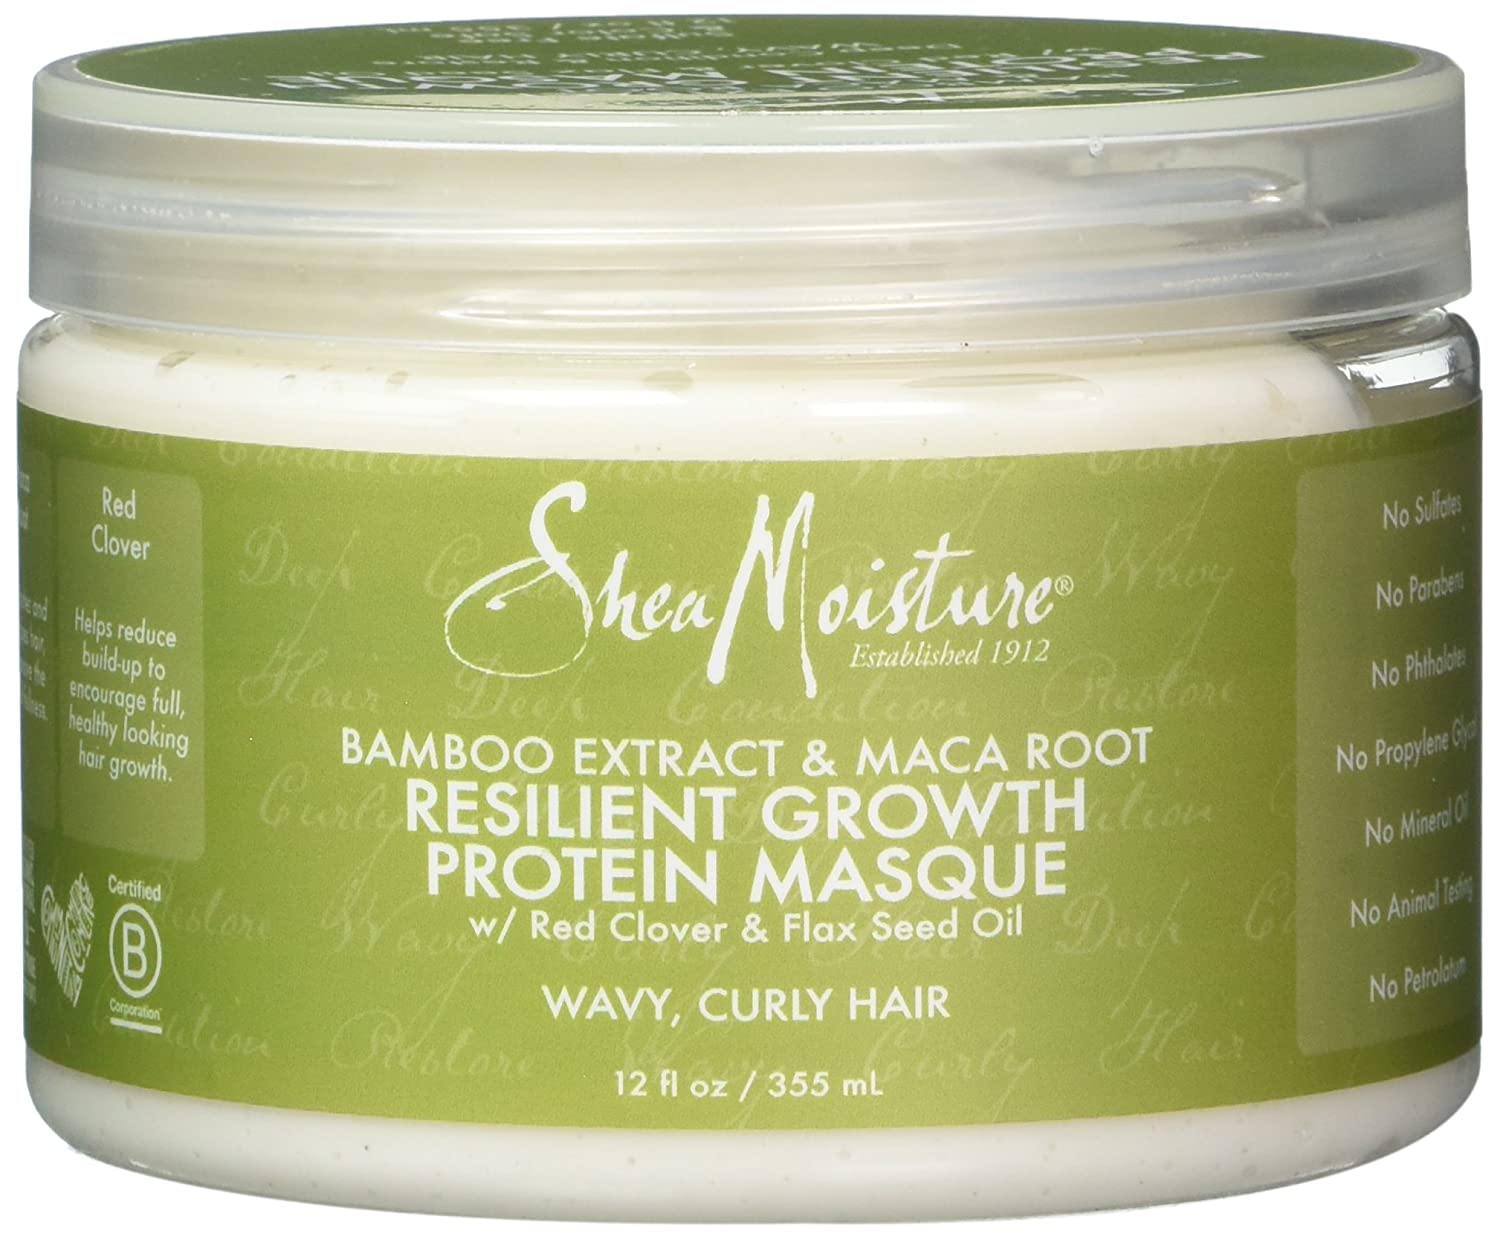 Shea Moisture Bamboo Extract & Maca Root Resilient Growth Protein Masque for Unisex, 12 Ounce PerfumeWorldWide Inc. Drop Ship U-HC-12202